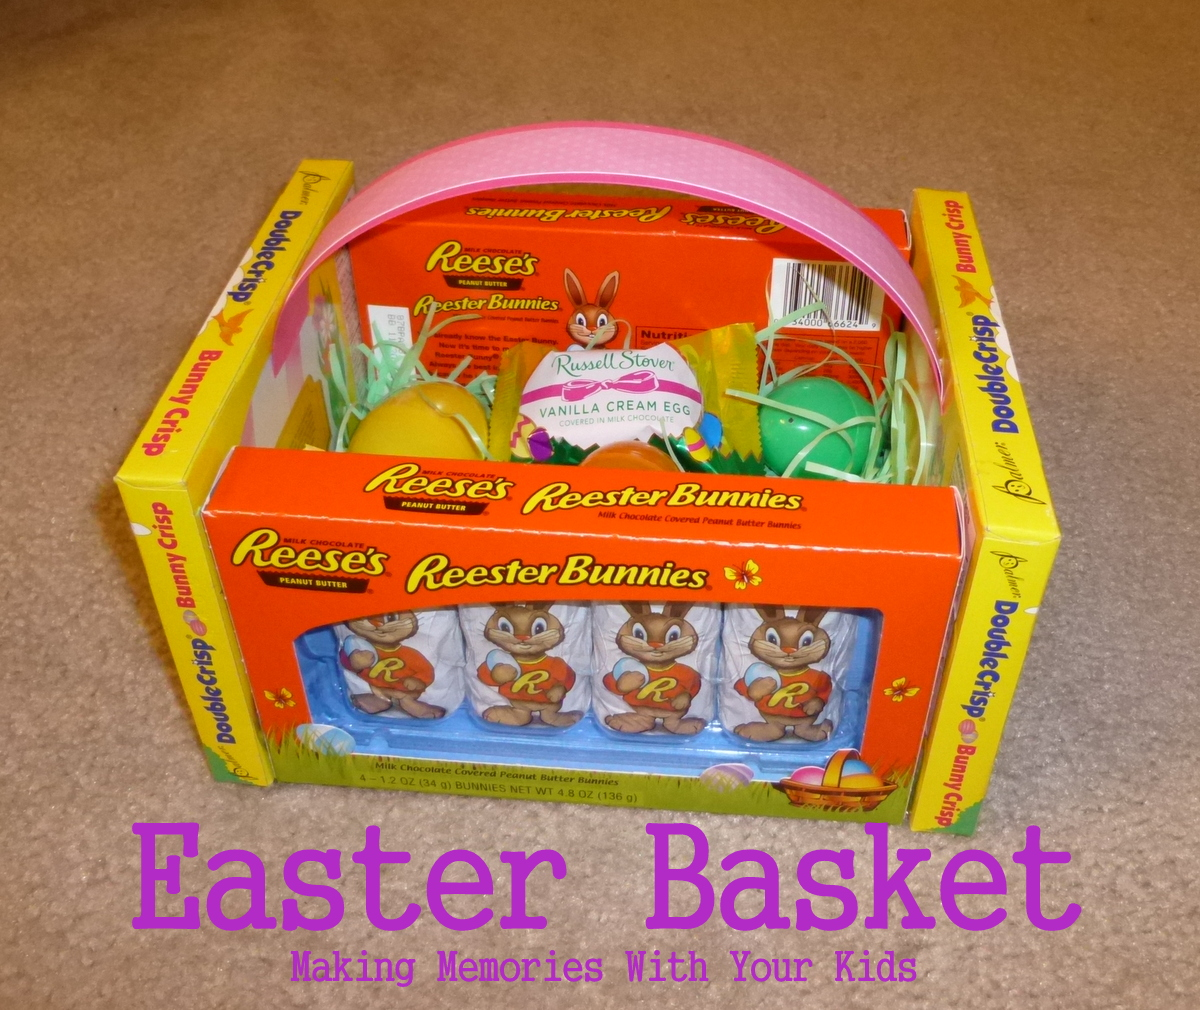 Edible easter baskets making memories with your kids edible easter baskets negle Image collections